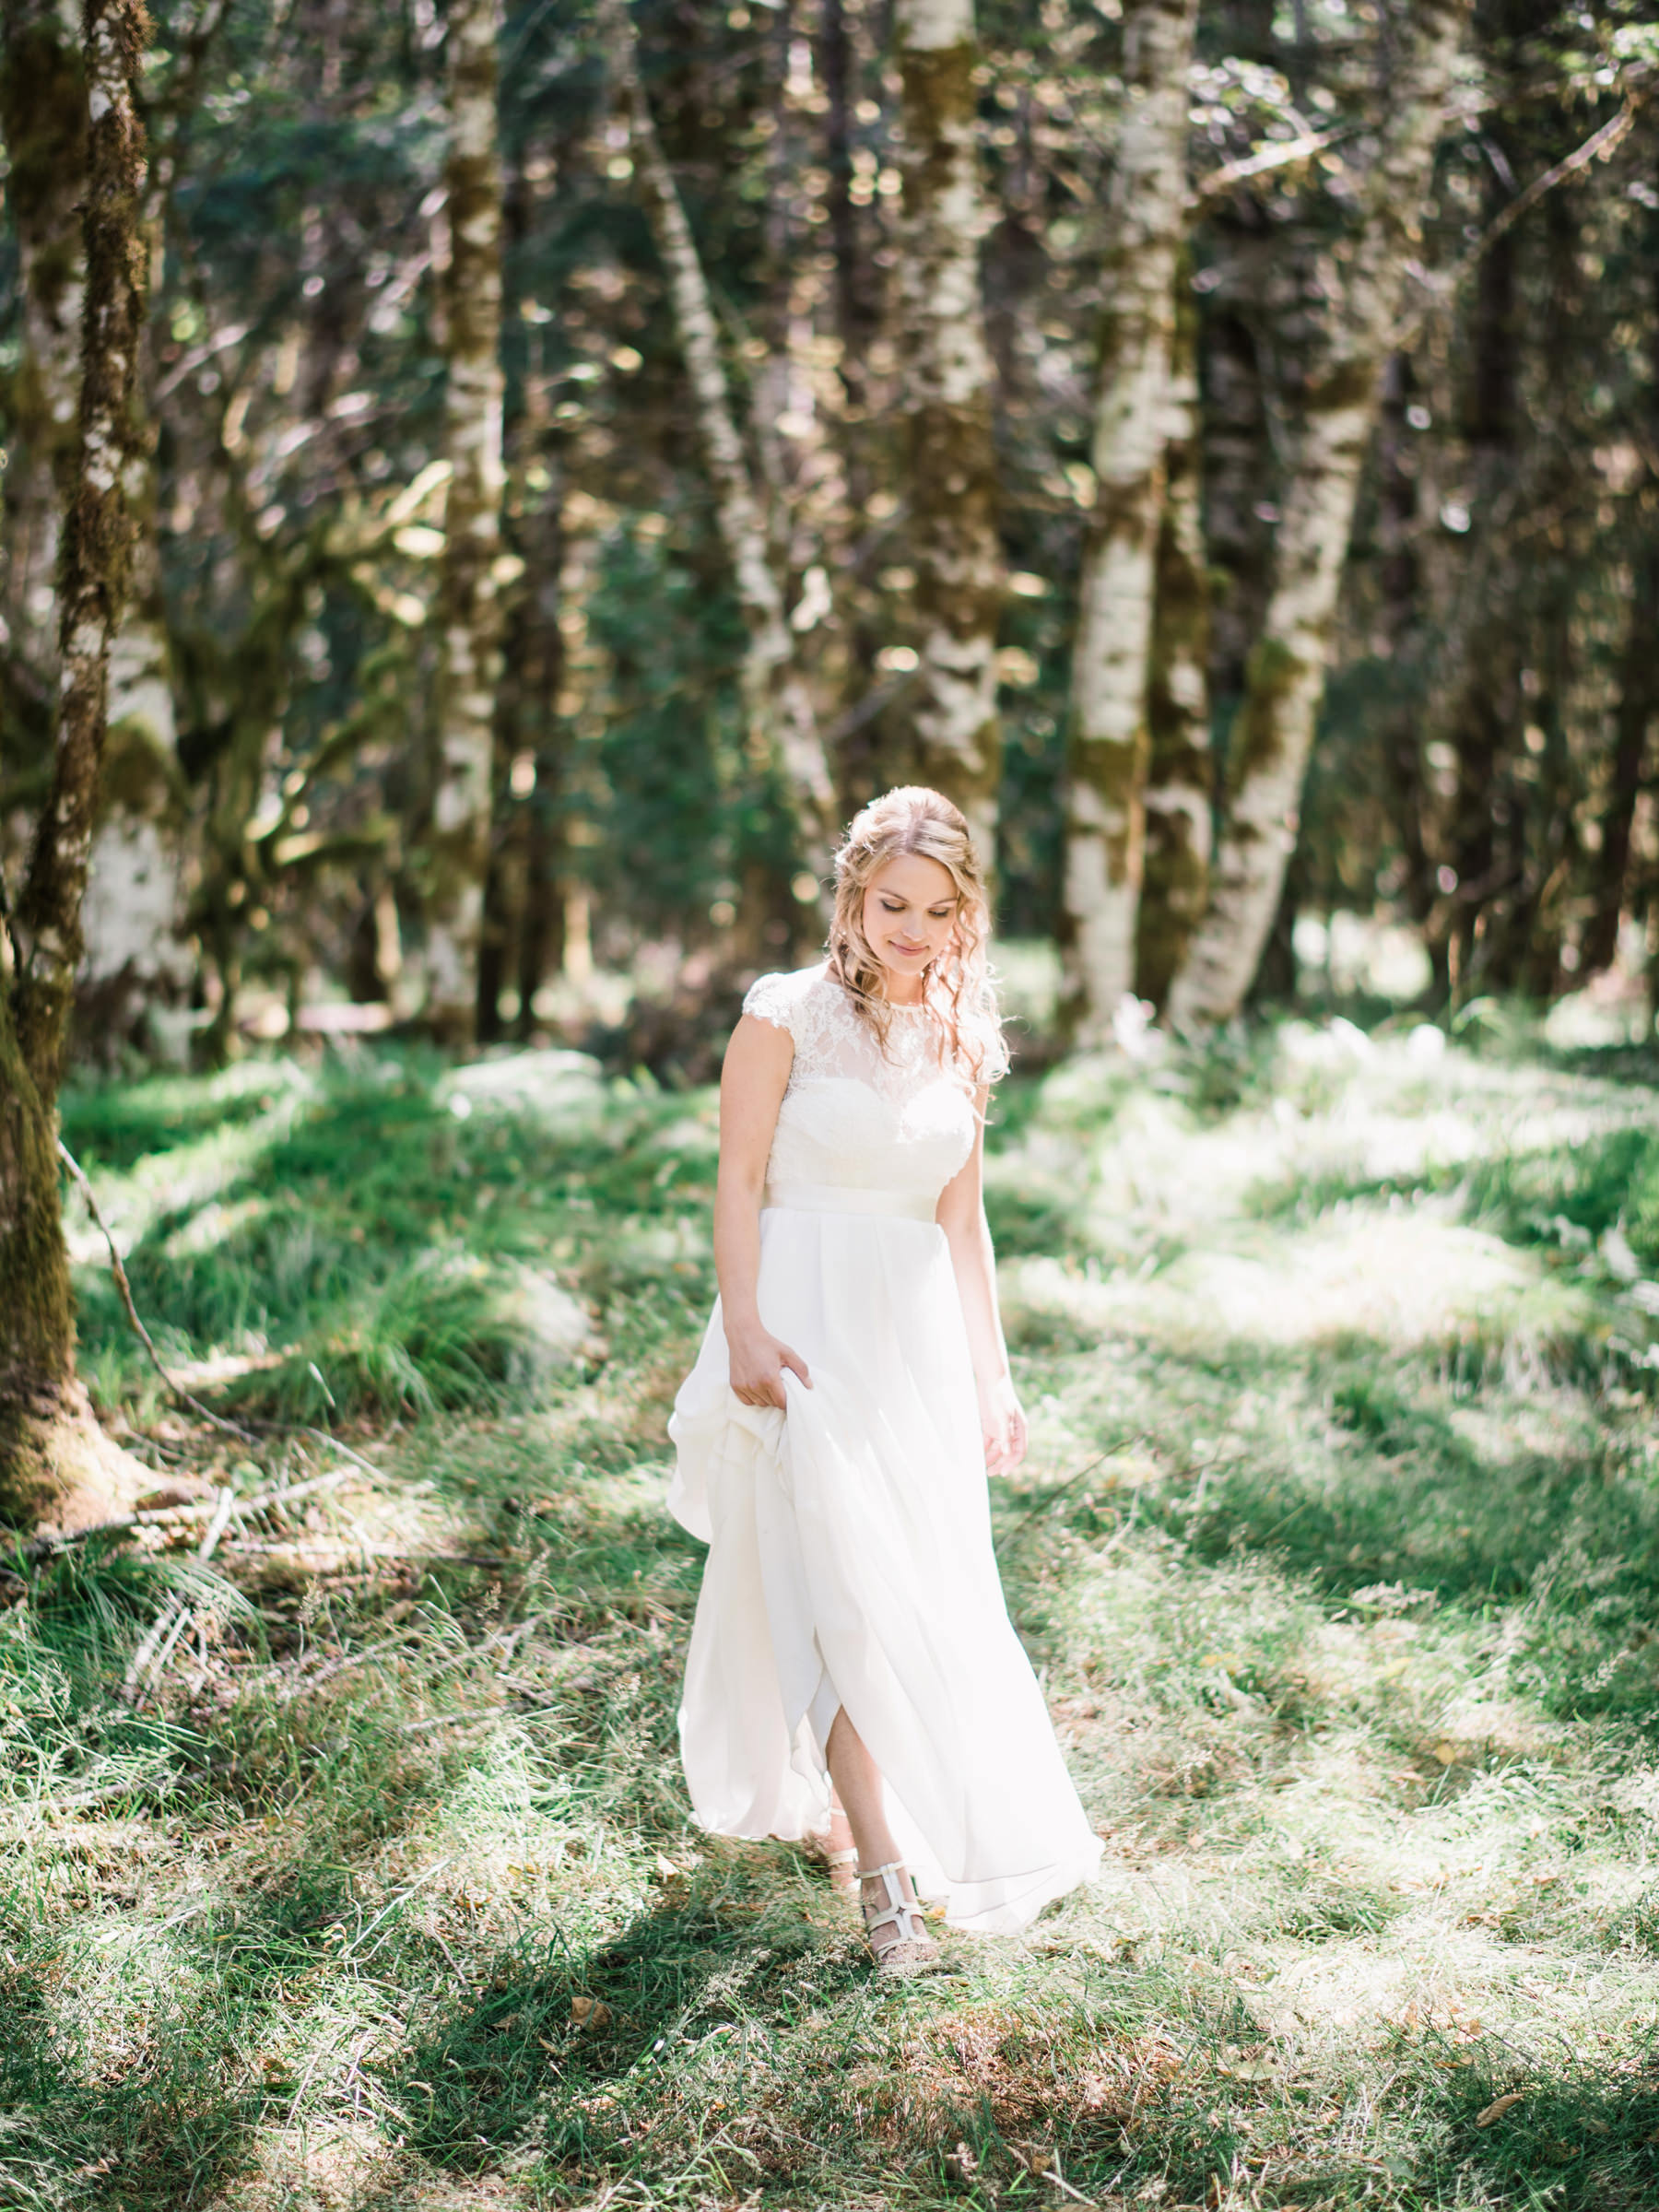 168-fine-art-film-wedding-portraits-at-nature-bride-near-the-lake-crescent-lodge.jpg